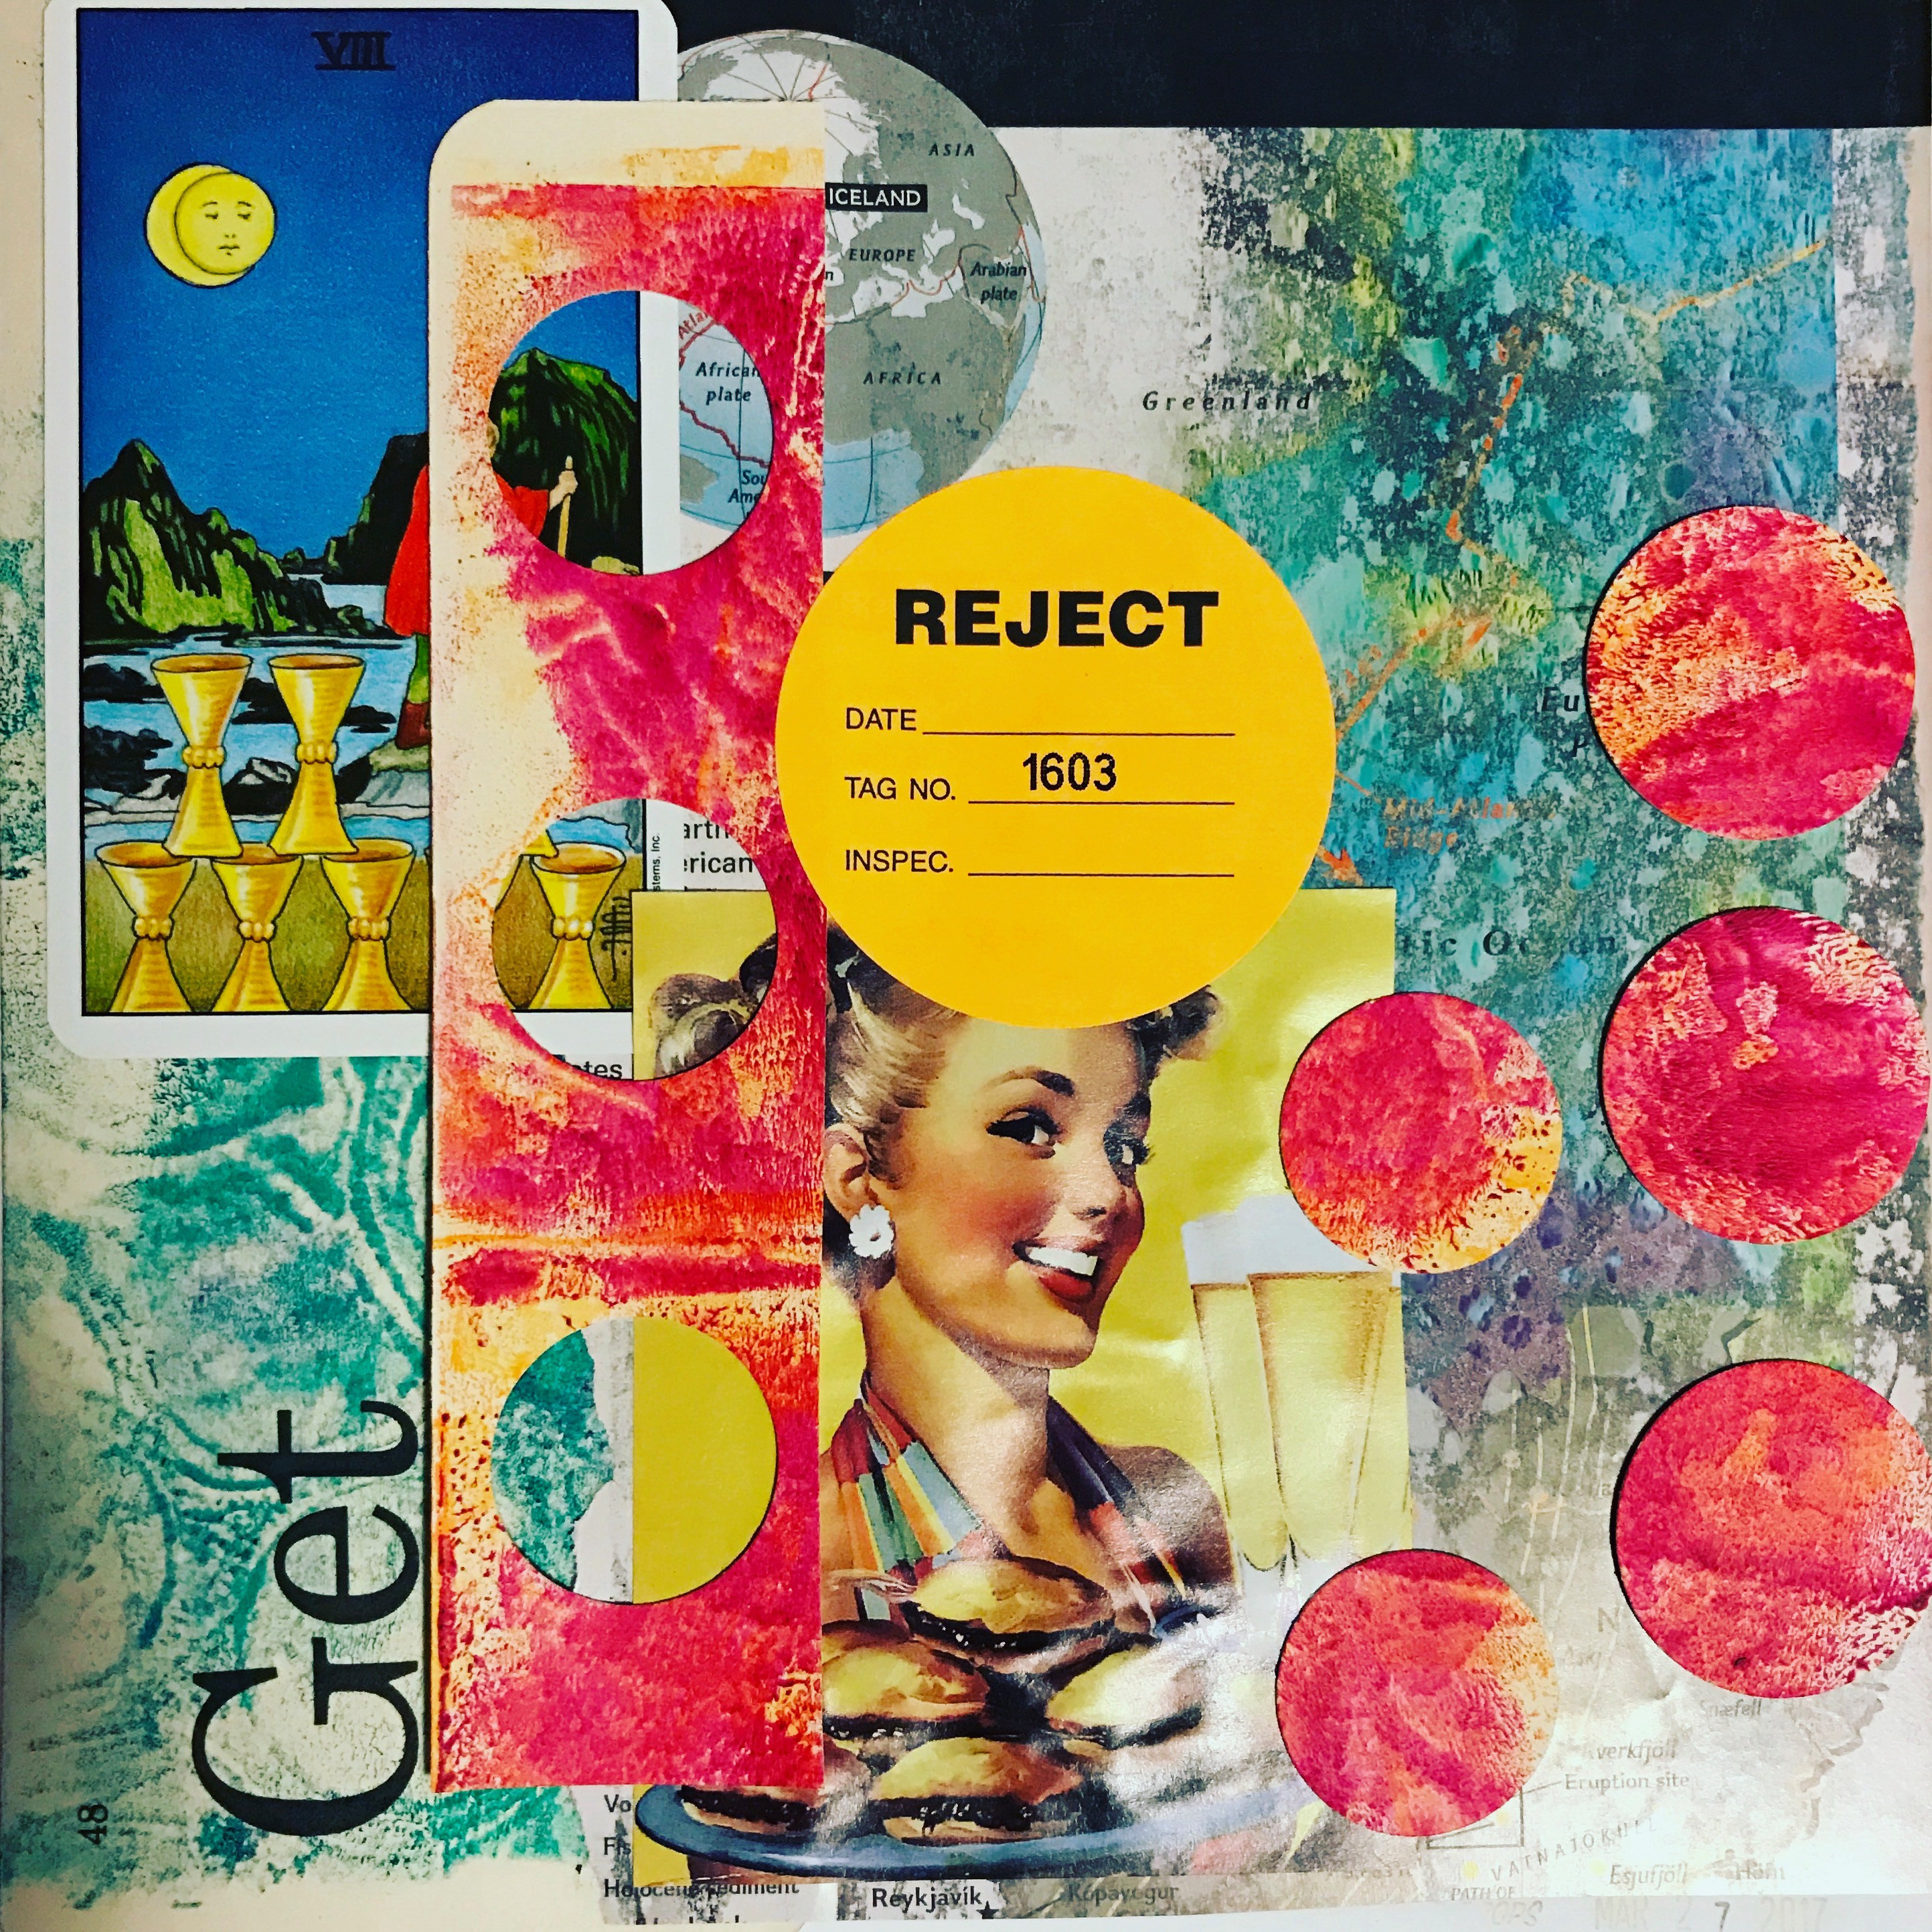 collage coral colored circles over blue & purple with a woman's face in the center and an orange sticker with the reject